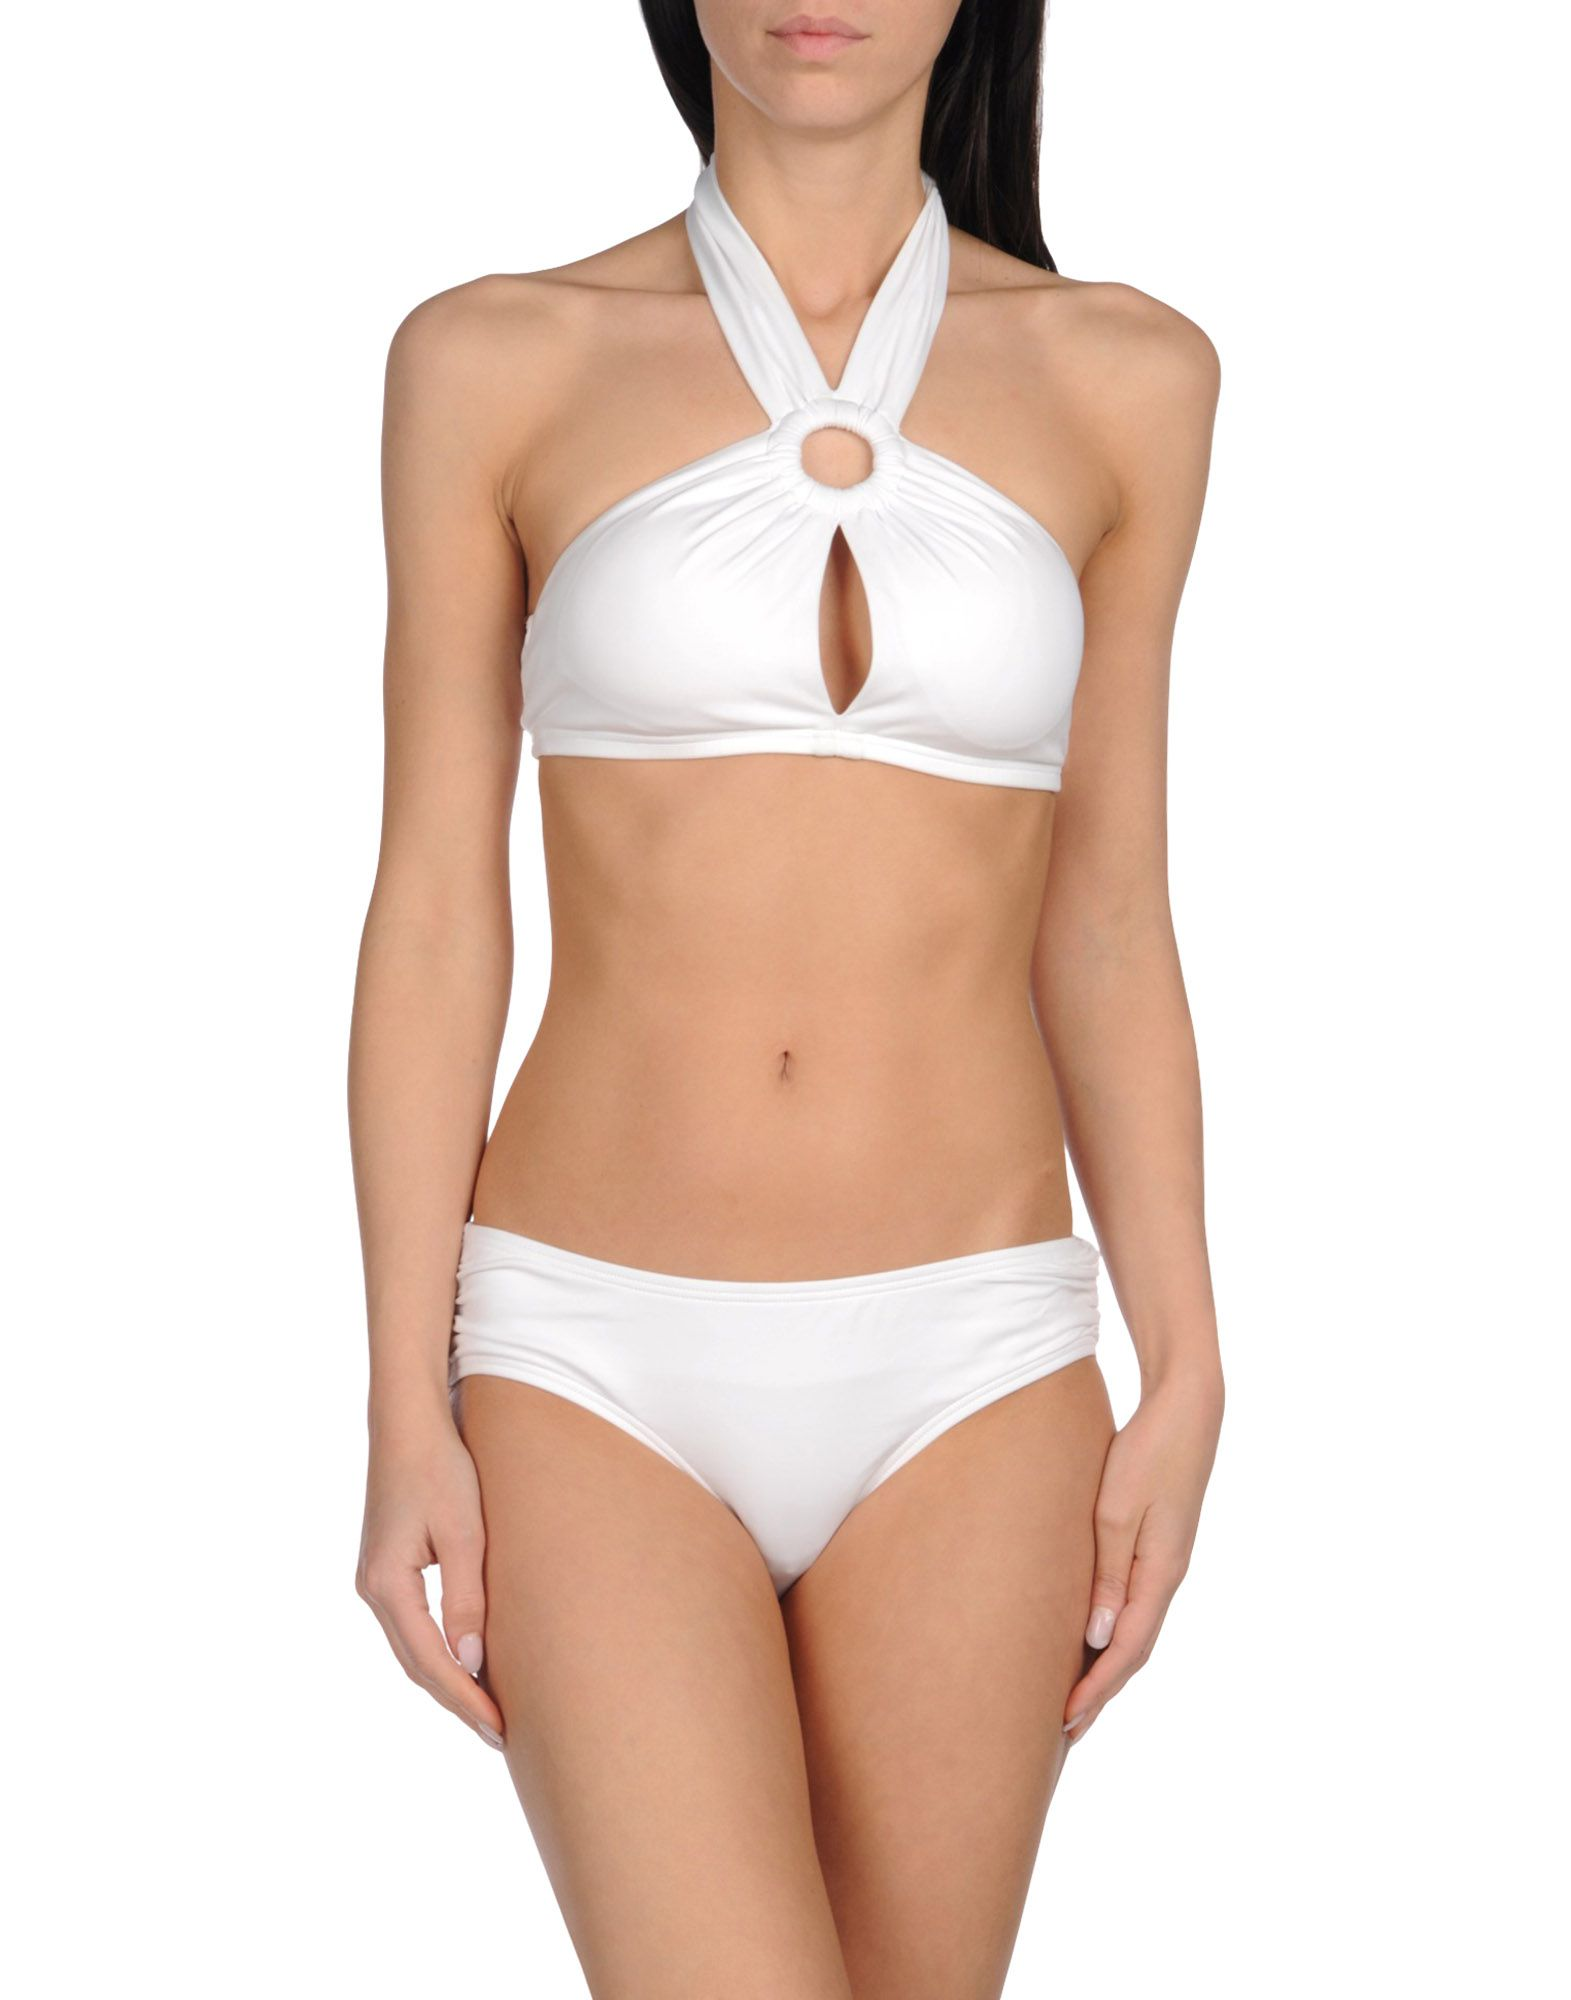 michael kors female michael kors bikinis